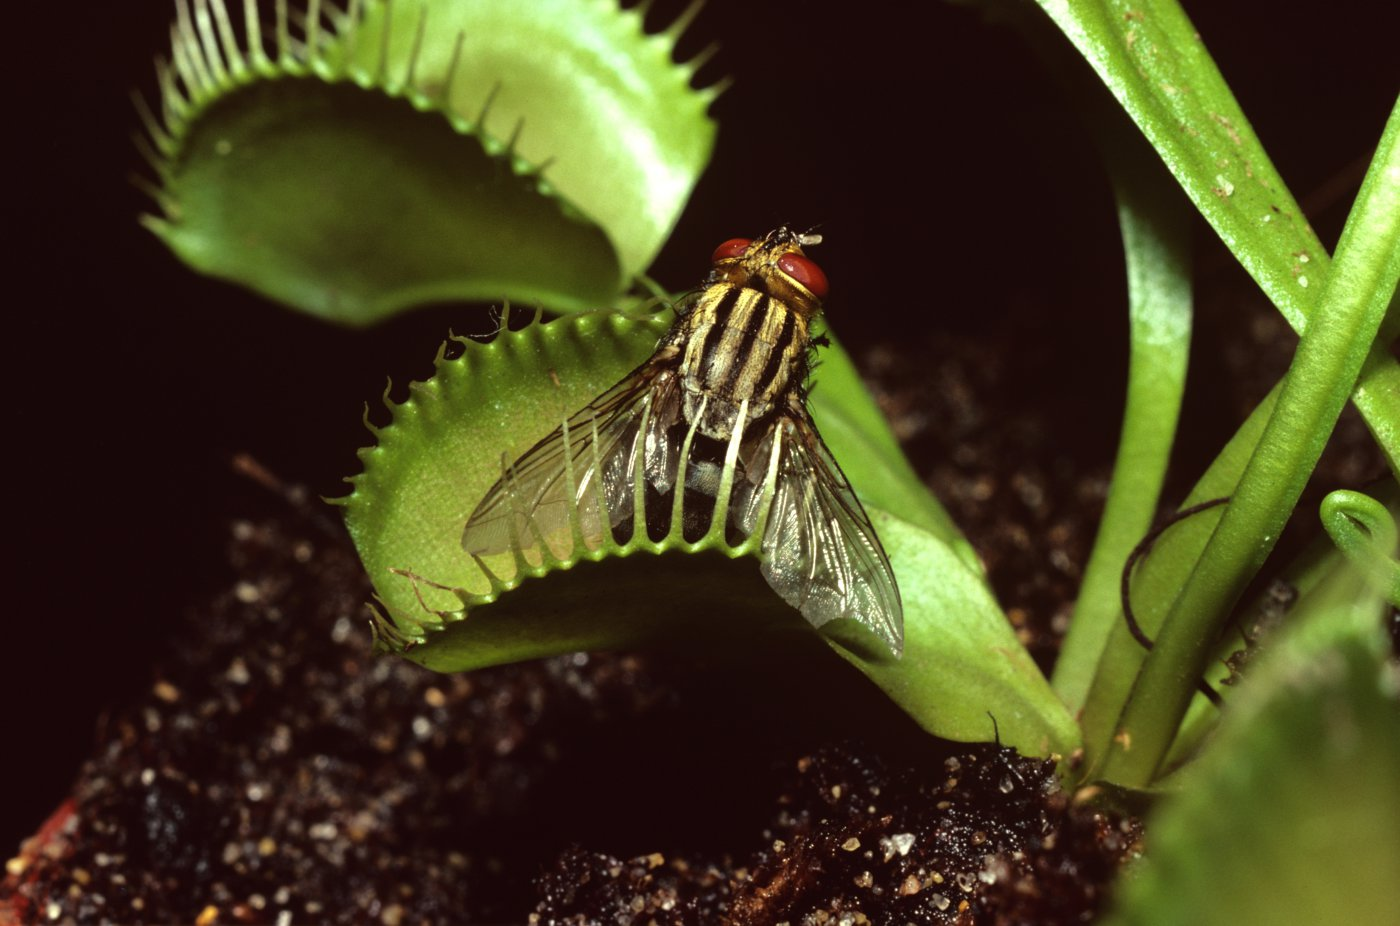 The intelligence of the Venus flytrap